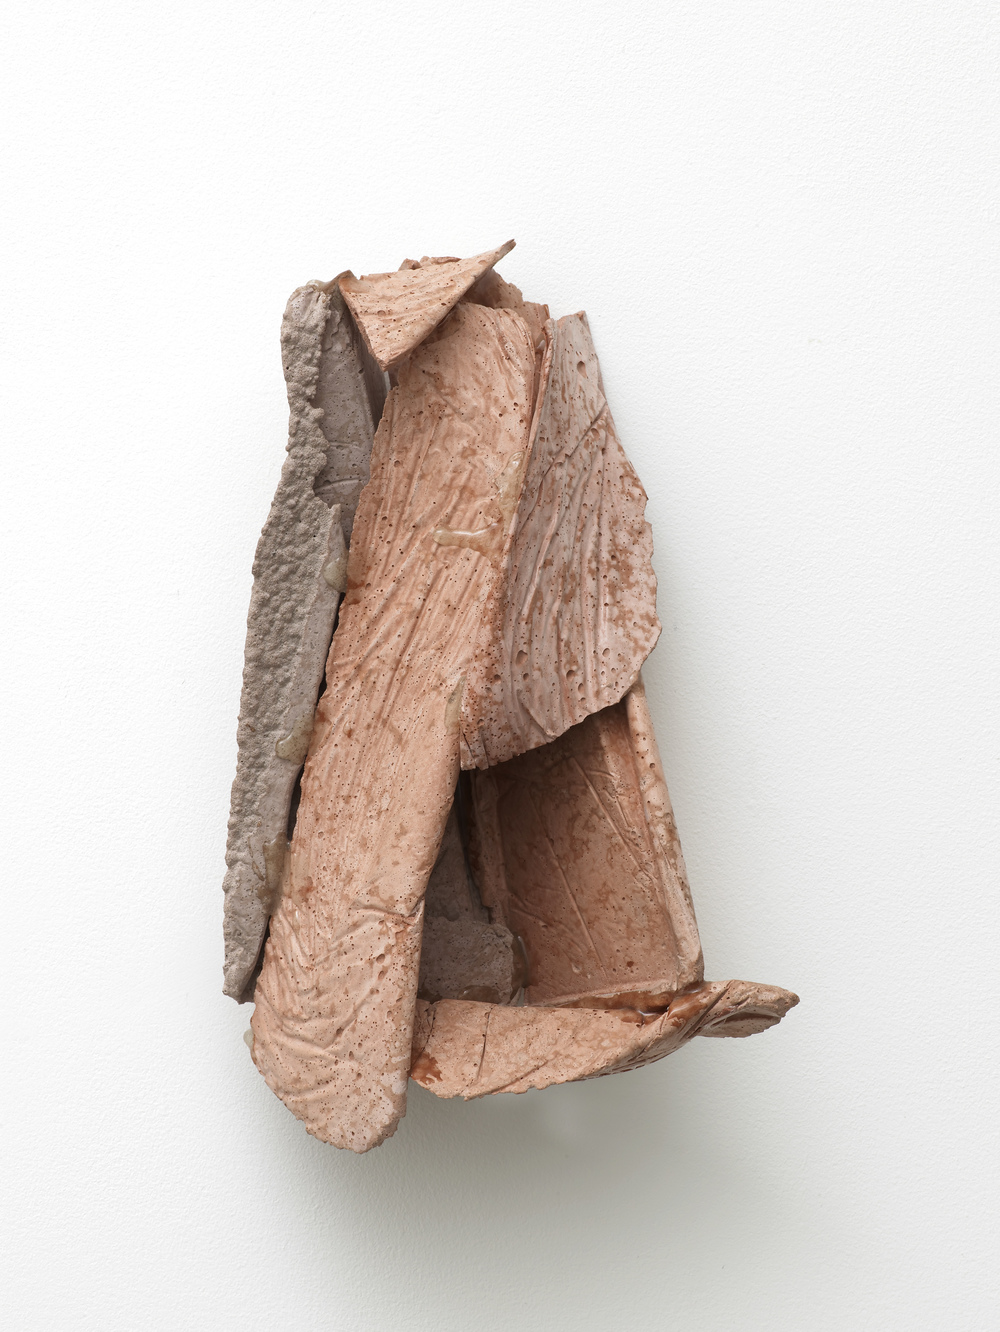 uuhnnh (Working Title) 2014 Concrete, glue 30 x 20 x 9 cm / 11.8 x 7.8 x 3.5 in